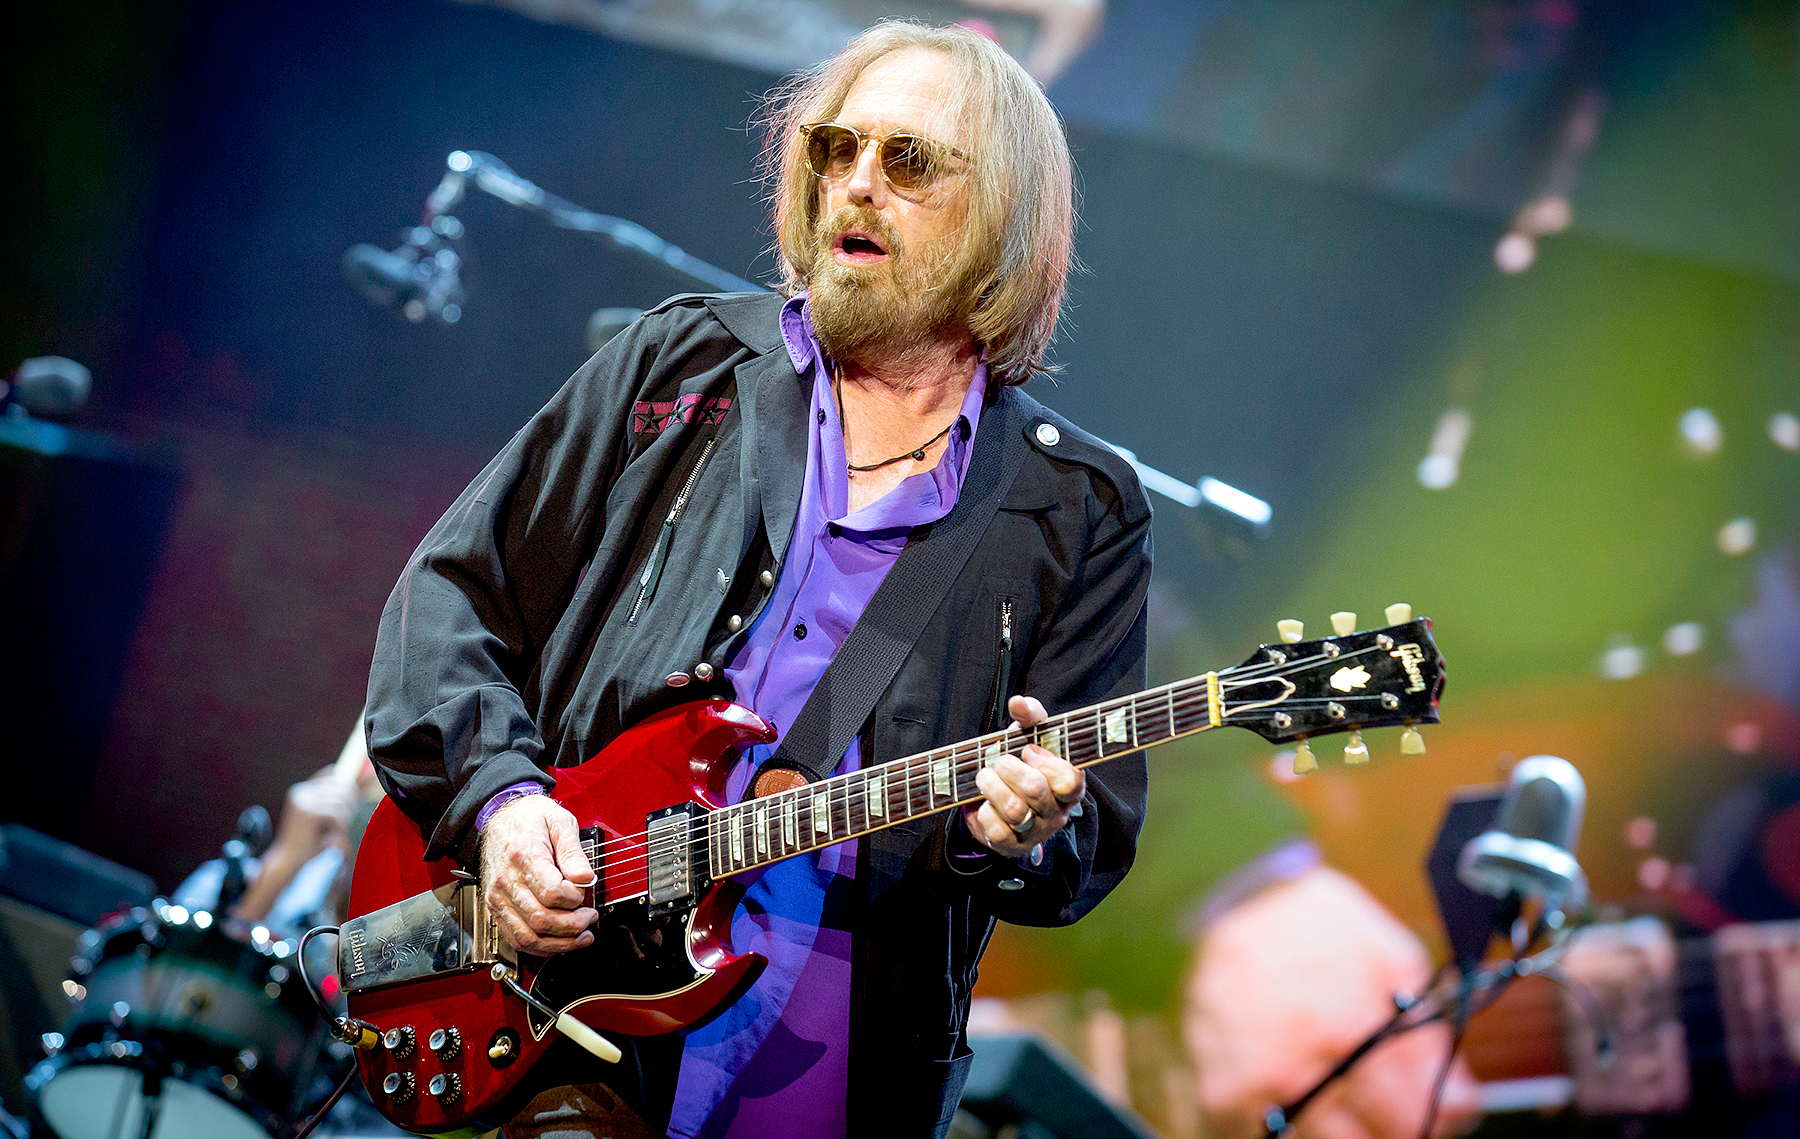 Tom Petty performs on Day 10 of the RBC Bluesfest in Ottawa, Canada, on July 16, 2017.